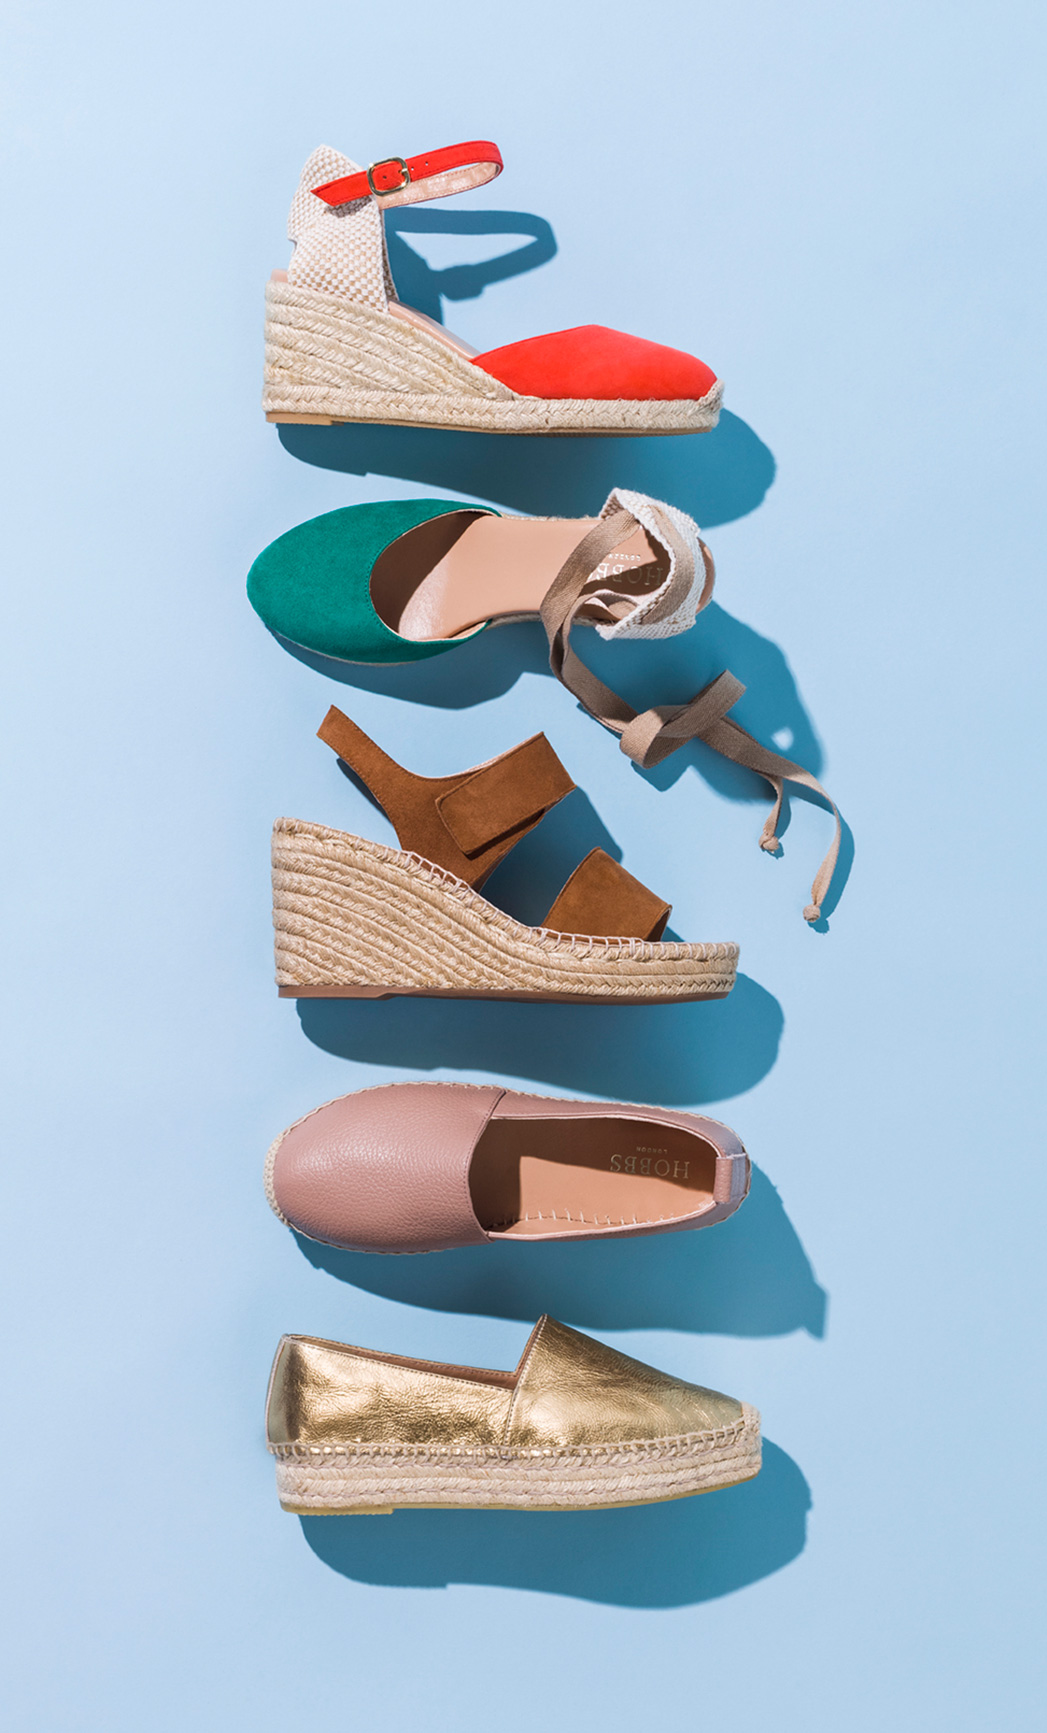 A variety of espadrille sandals lie, displayed on a pale blue background